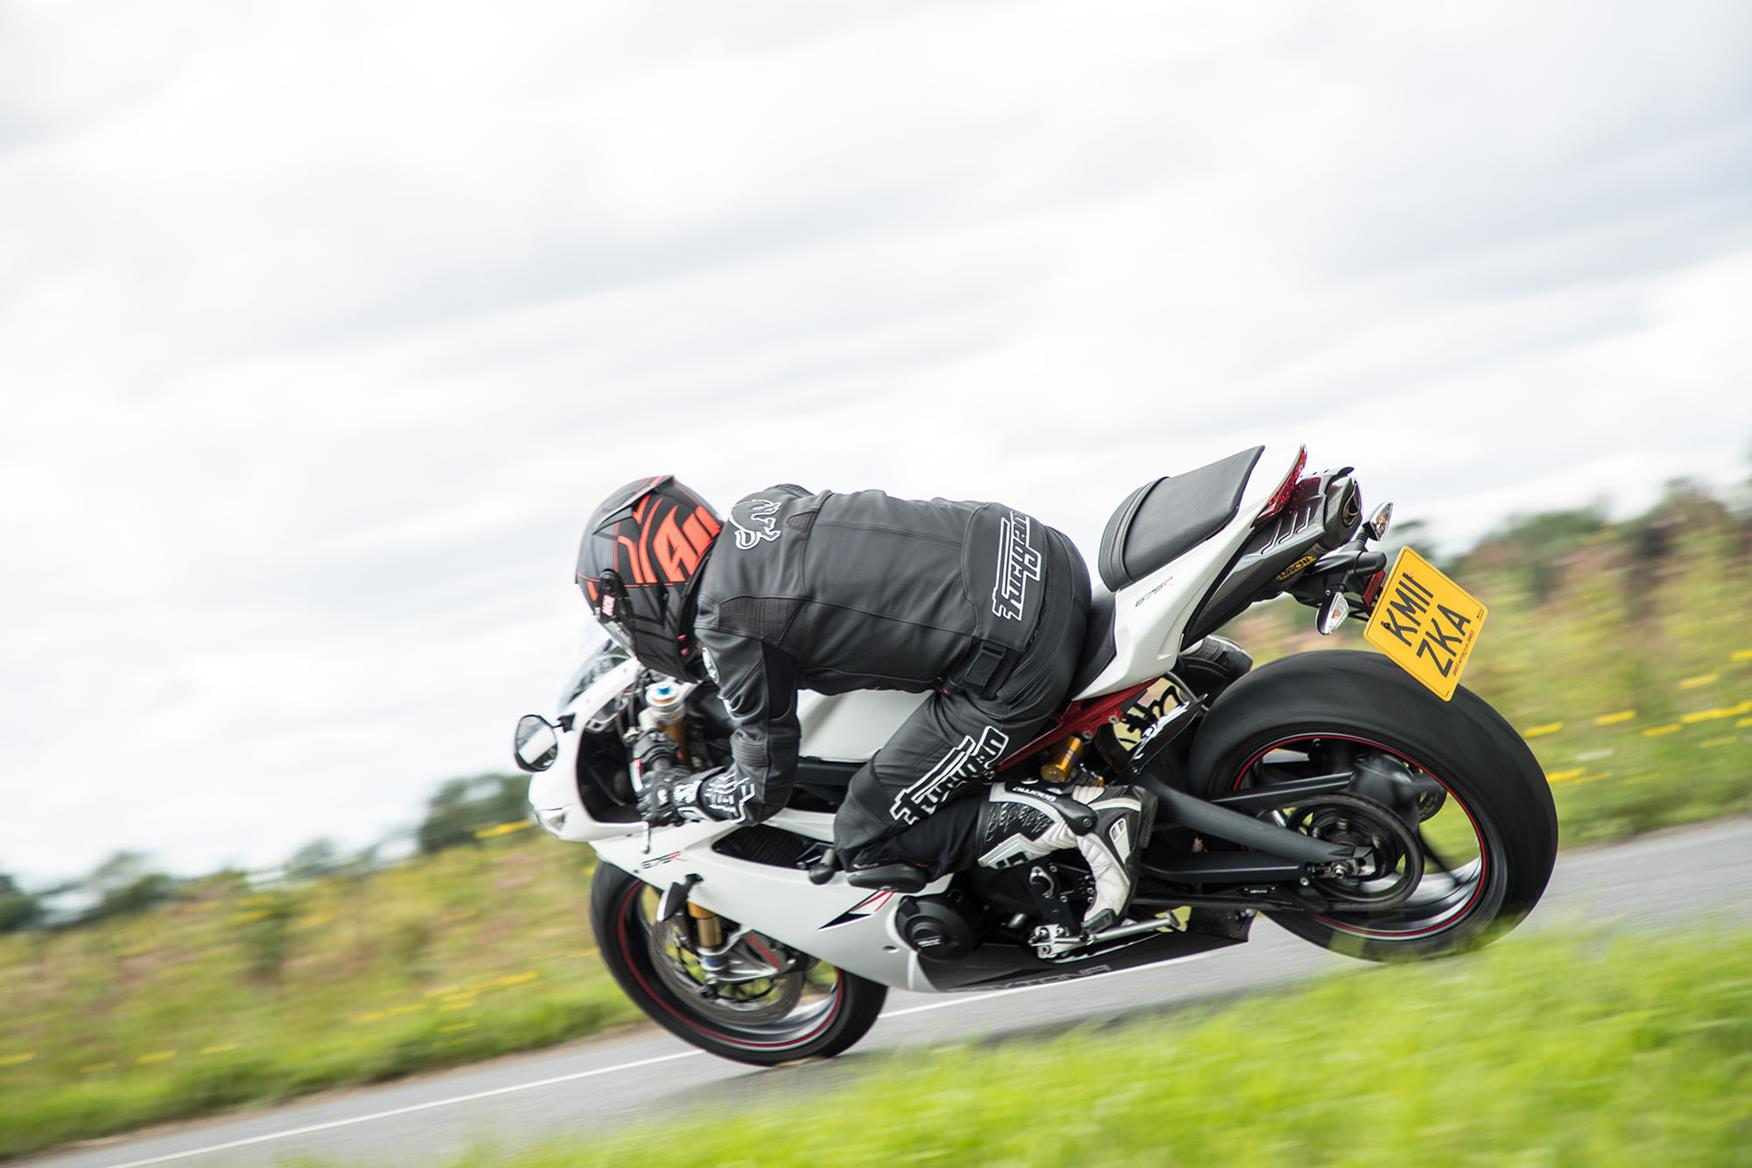 The Triumph Daytona 675R can be hard work in town